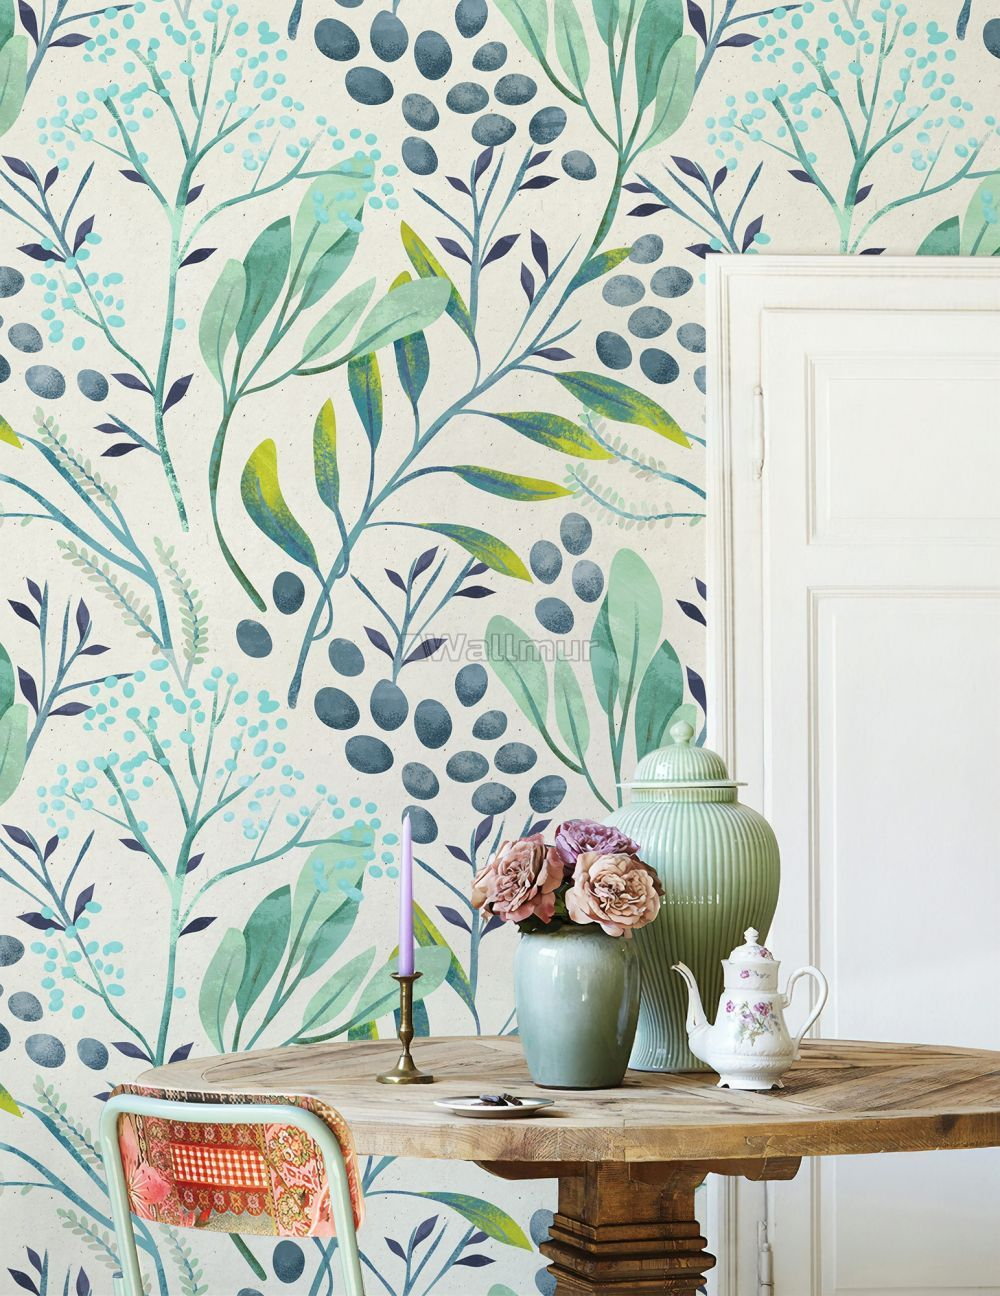 Sage Green Feather Wallpaper Peel And Stick Green Feathery Etsy Green Home Offices Living Room Green How To Install Wallpaper